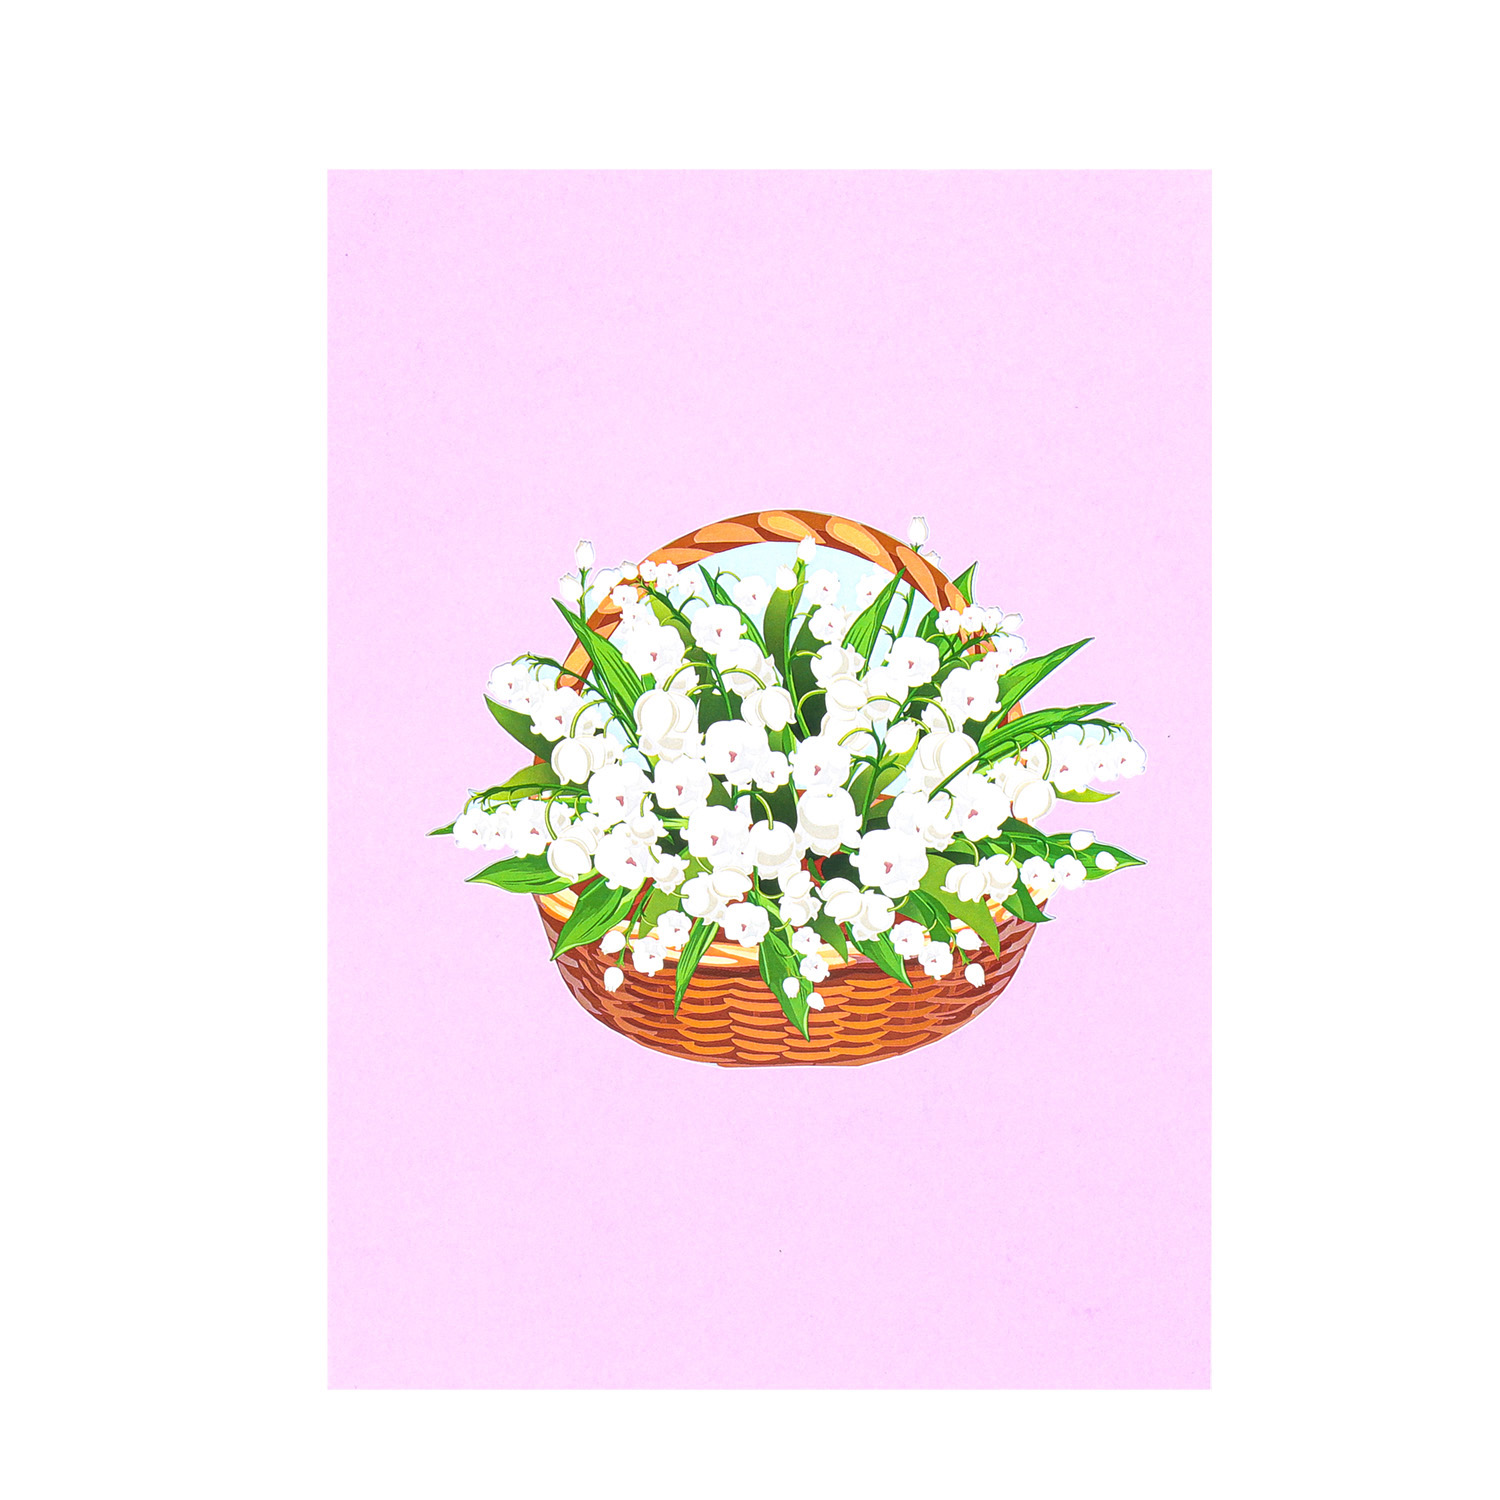 Lilies-of-the-Valley-Basket-Pop-Up-Card-Cover-FL083-Mothers-Day-pop-up-card-pop-up-card-for-birthday-just-because-pop-up-card.jpg